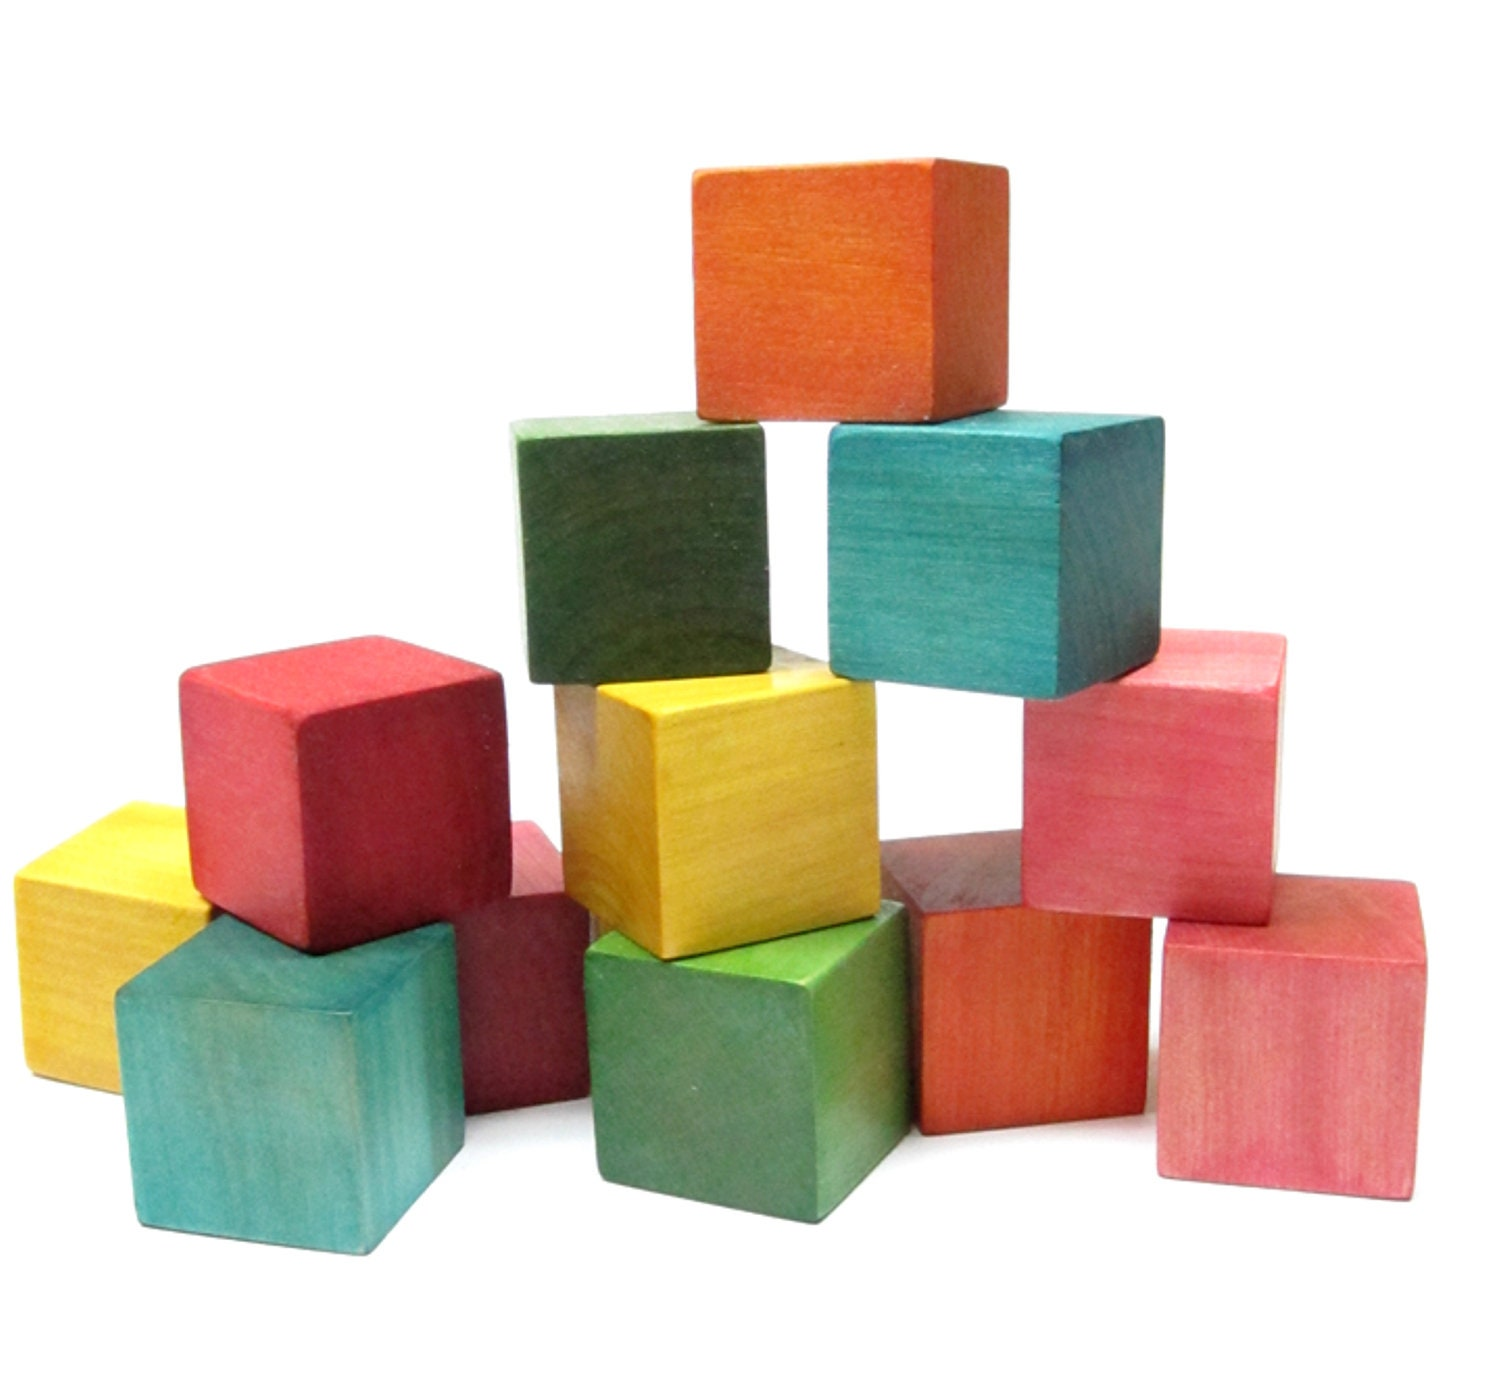 Baby Blocks Toys : Wood toys blocks colorful waldorf building